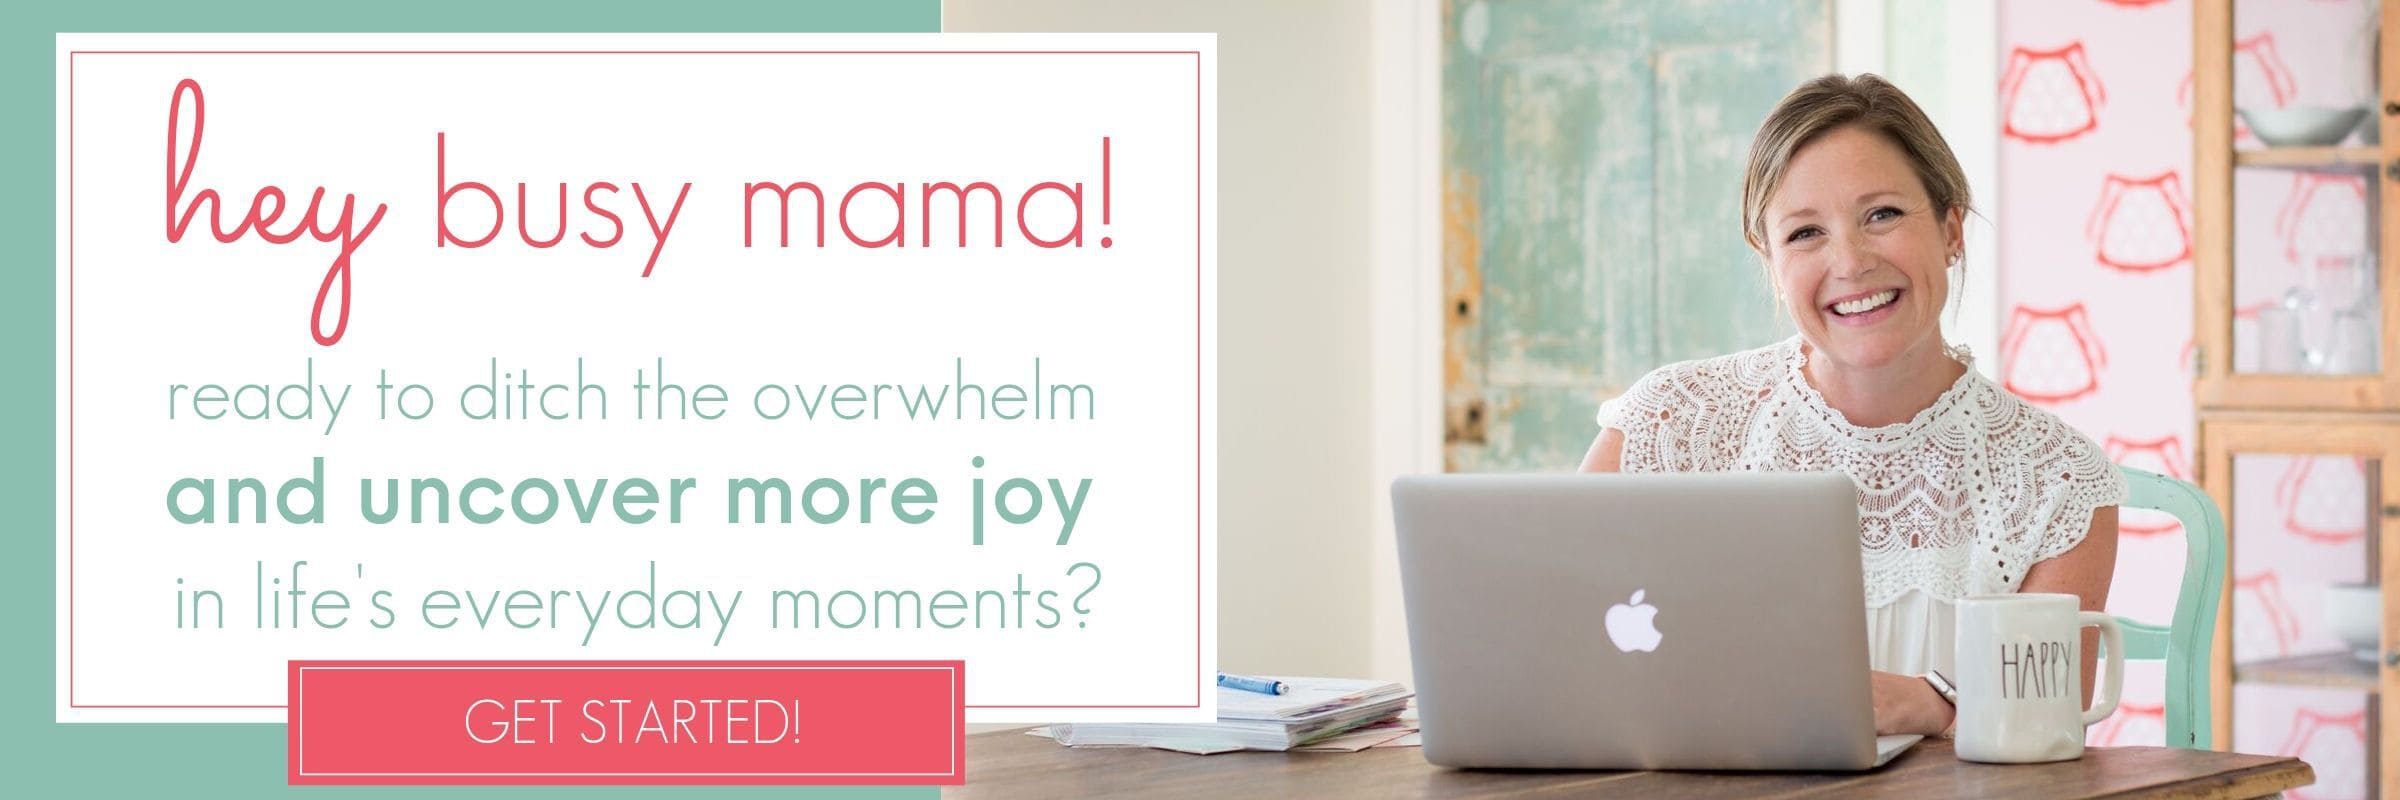 beloved header hey busy mama GET STARTED